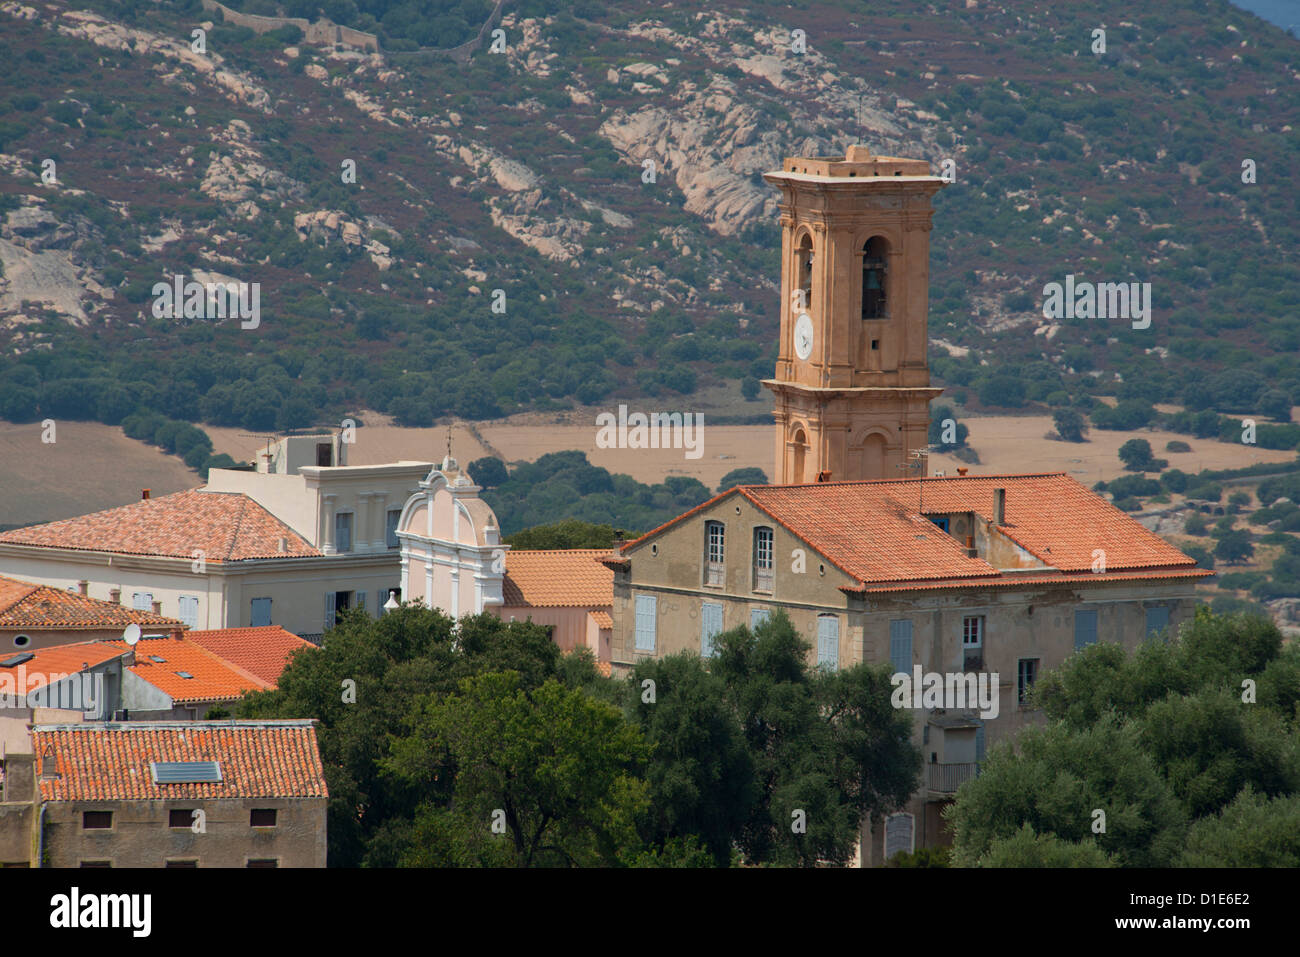 An elevated view of the picturesque village of Aregno in the inland Haute Balagne region, Corsica, France, Europe Stock Photo